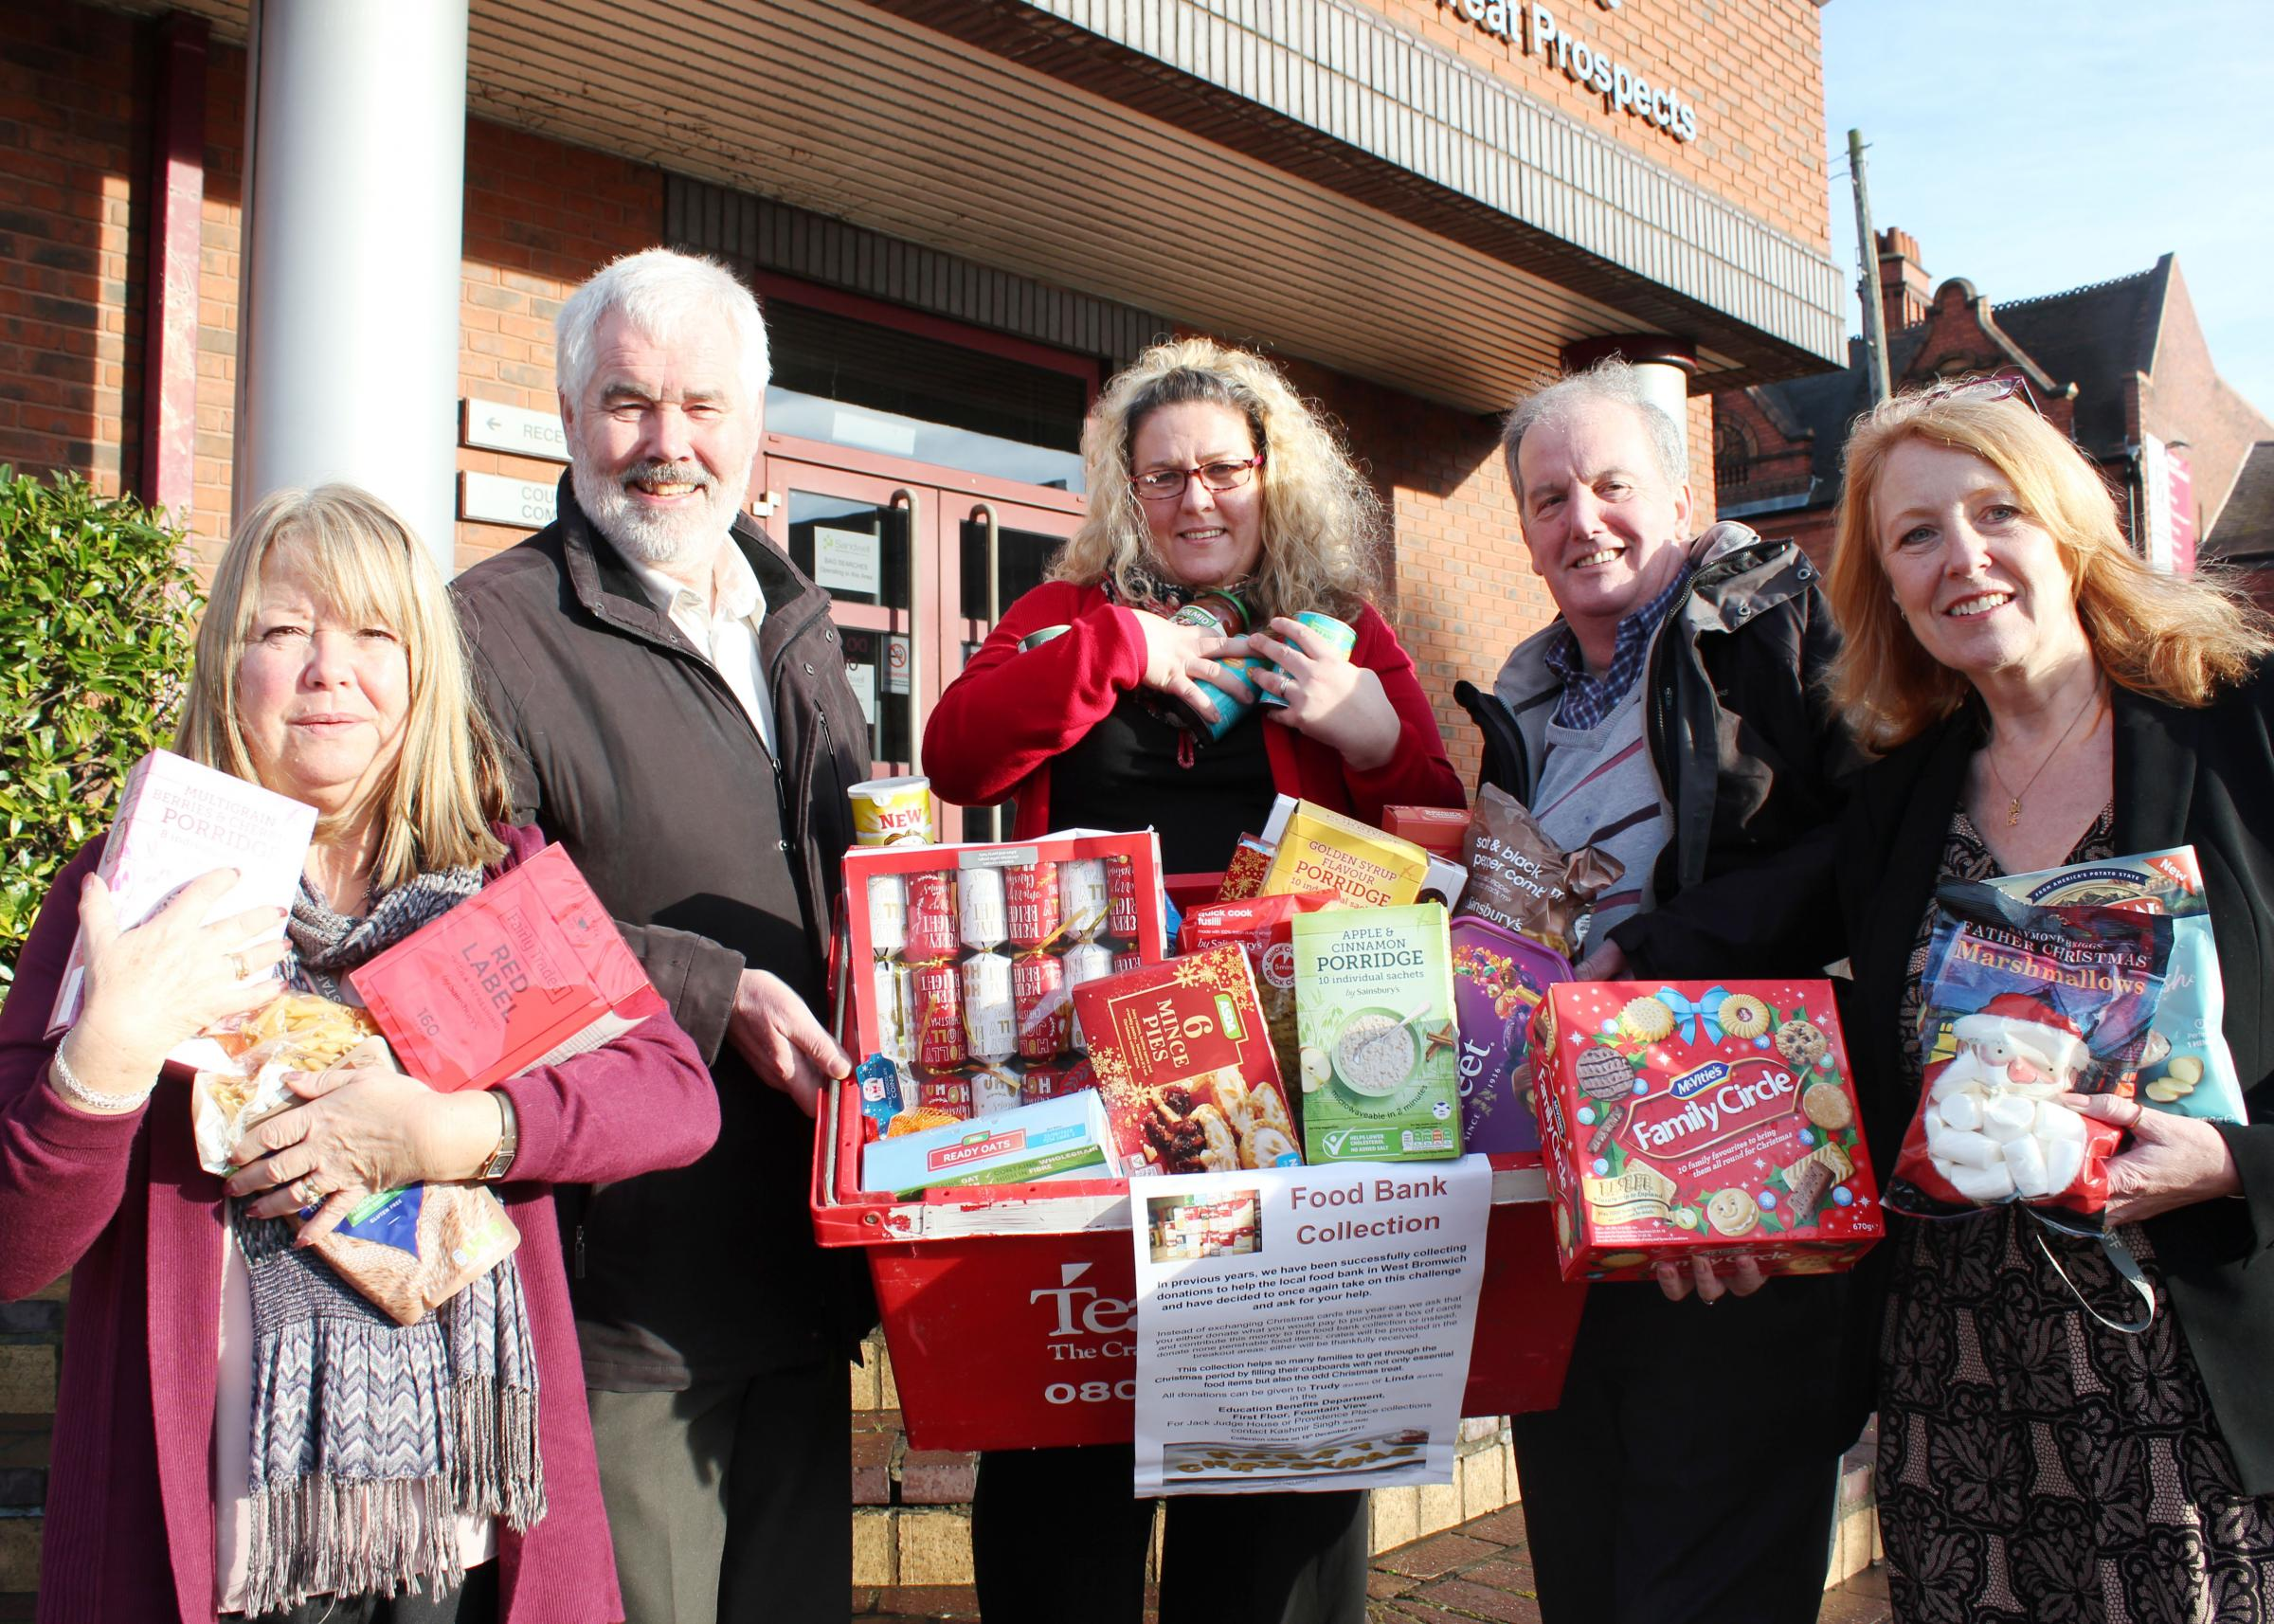 Linda Woodall, Cllr Steve Trow, Trudy Saddington, Keith Turner and Joy Djukic with the donated food.